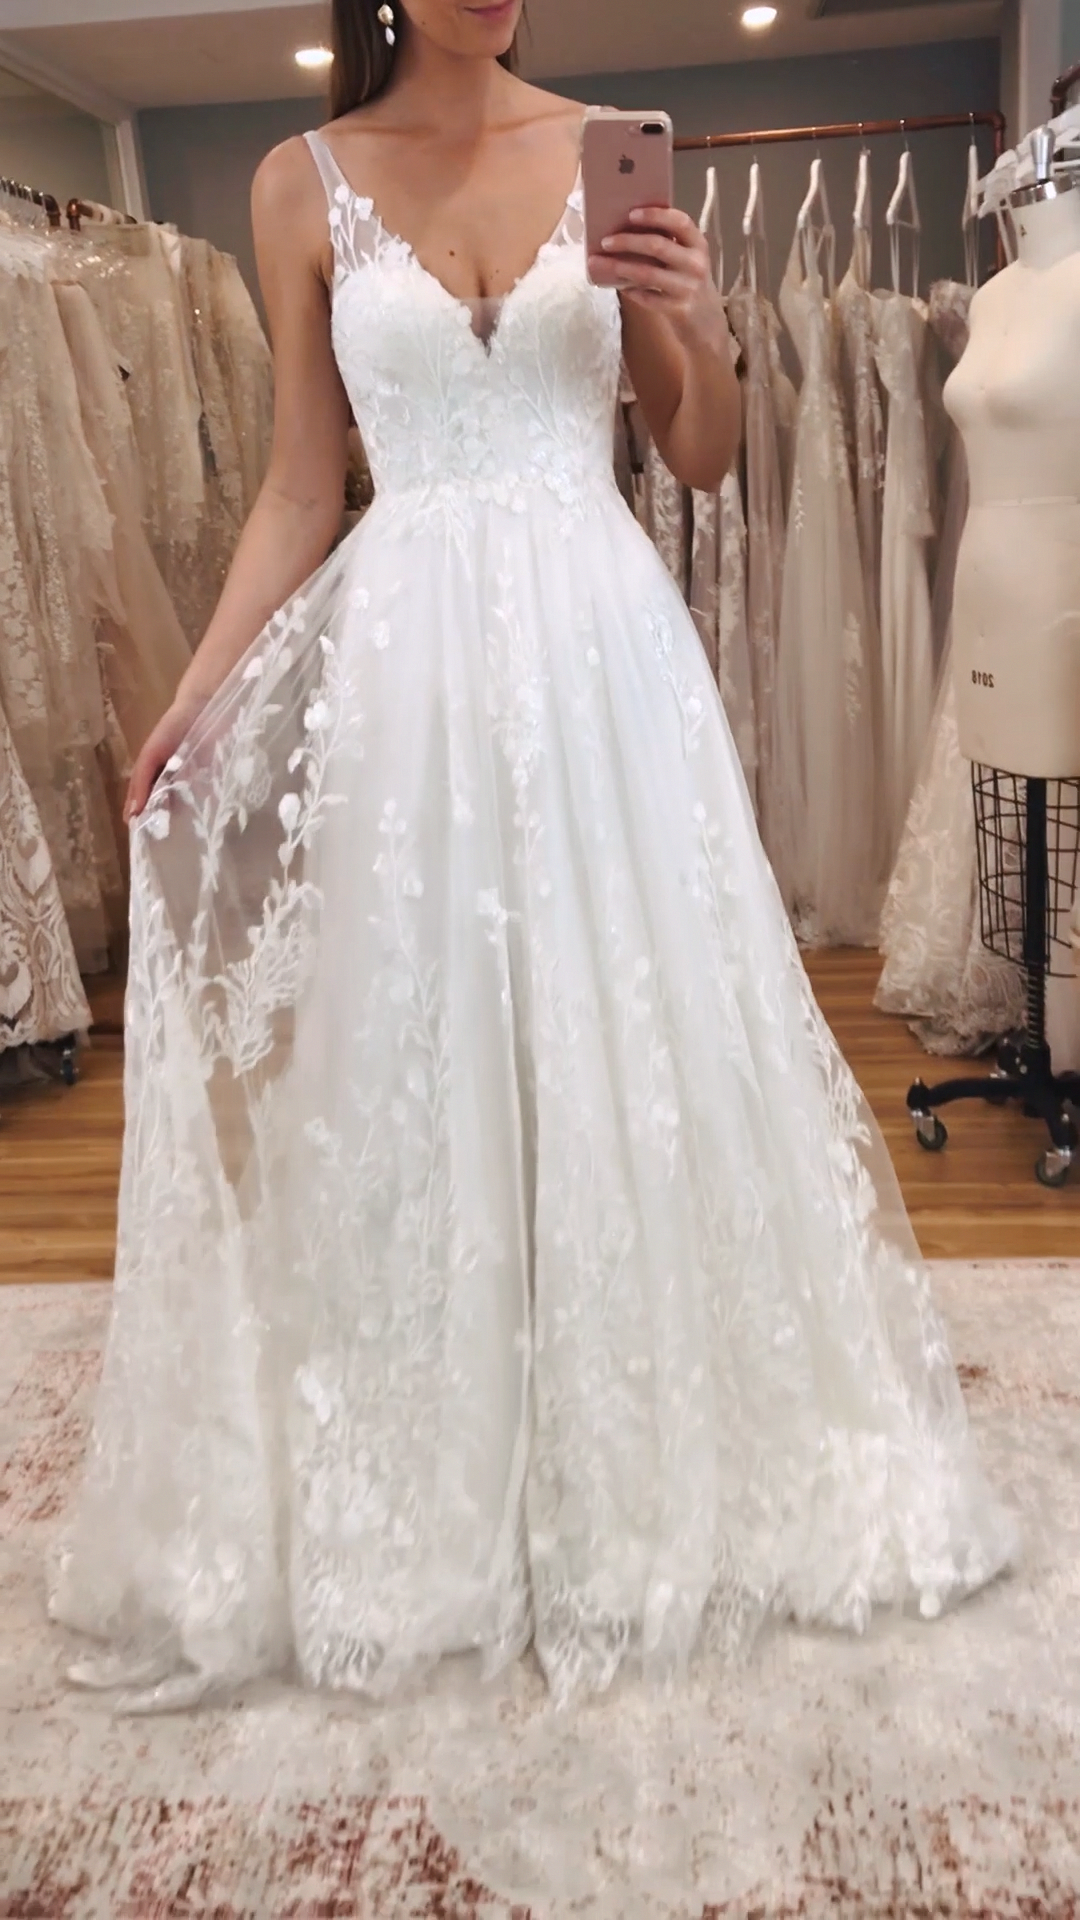 The Harper Gown In Ivory By Madi Lane Bridal Madilanebridal Madilanebride Wed In 2020 White Lace Long Sleeve Wedding Dress Wedding Dresses Wedding Dress Long Sleeve [ 1920 x 1080 Pixel ]